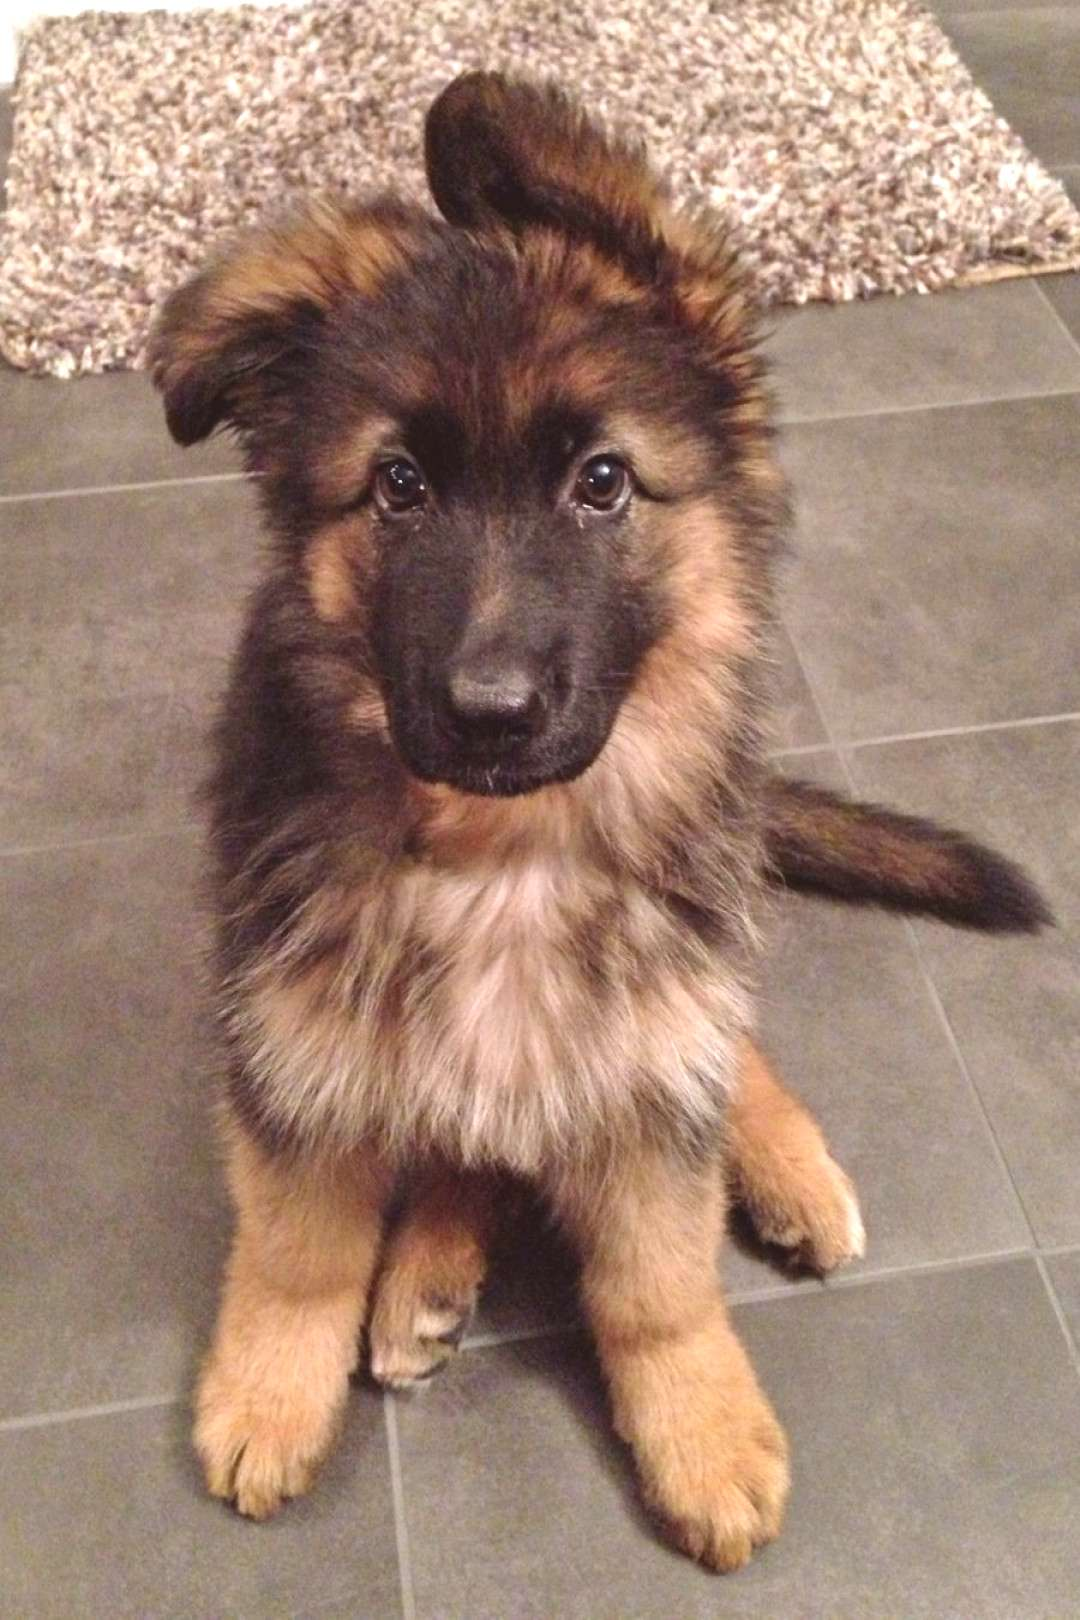 Lexi the German Shepherd reminds me of our Ranger when we got him